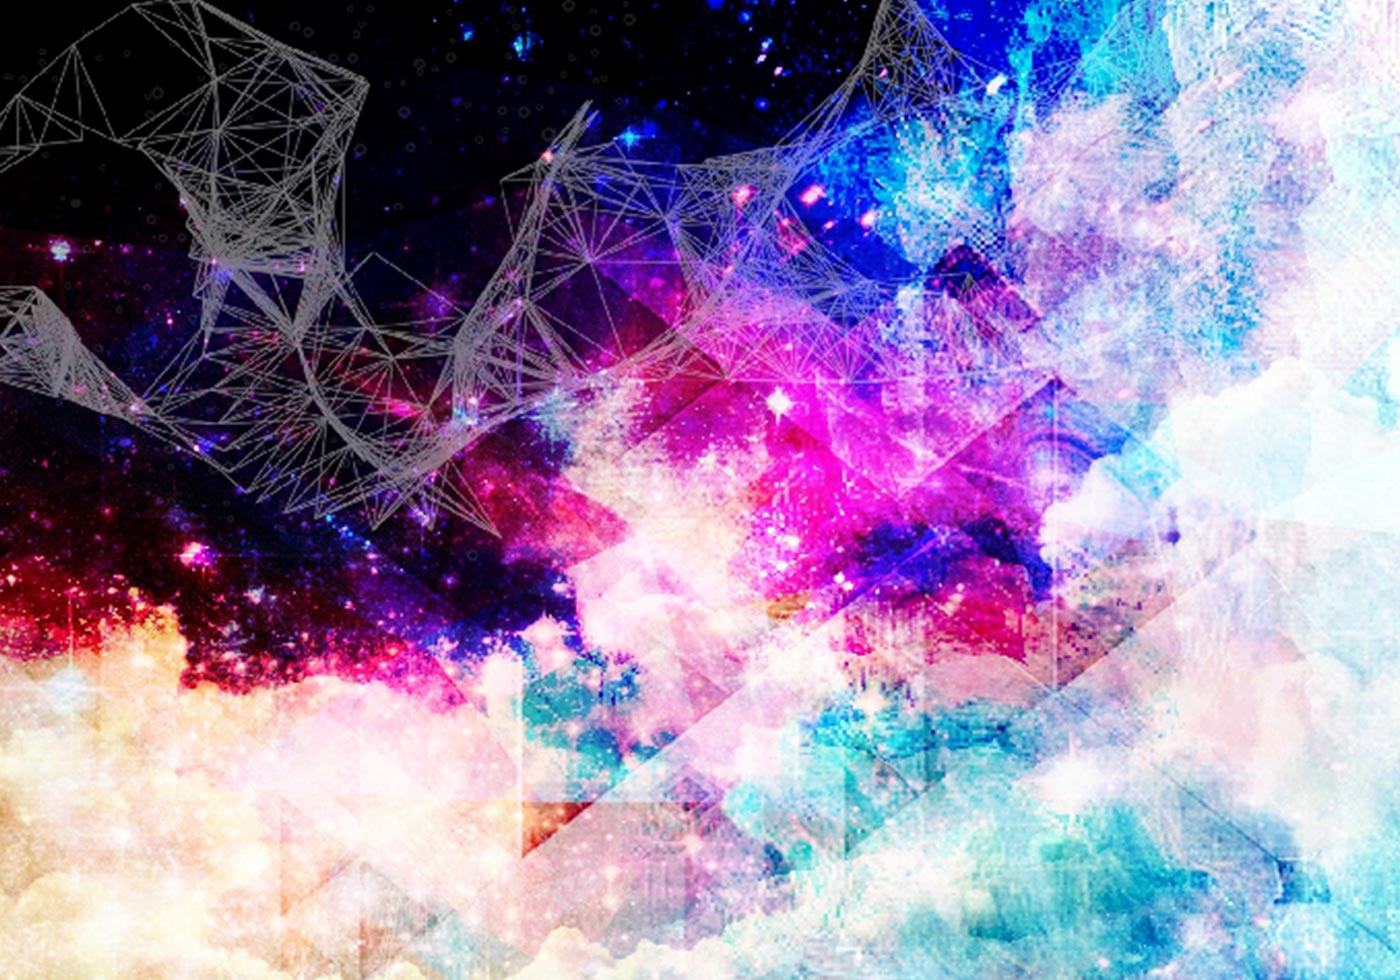 Adobe photoshop abstract background free vector download ...